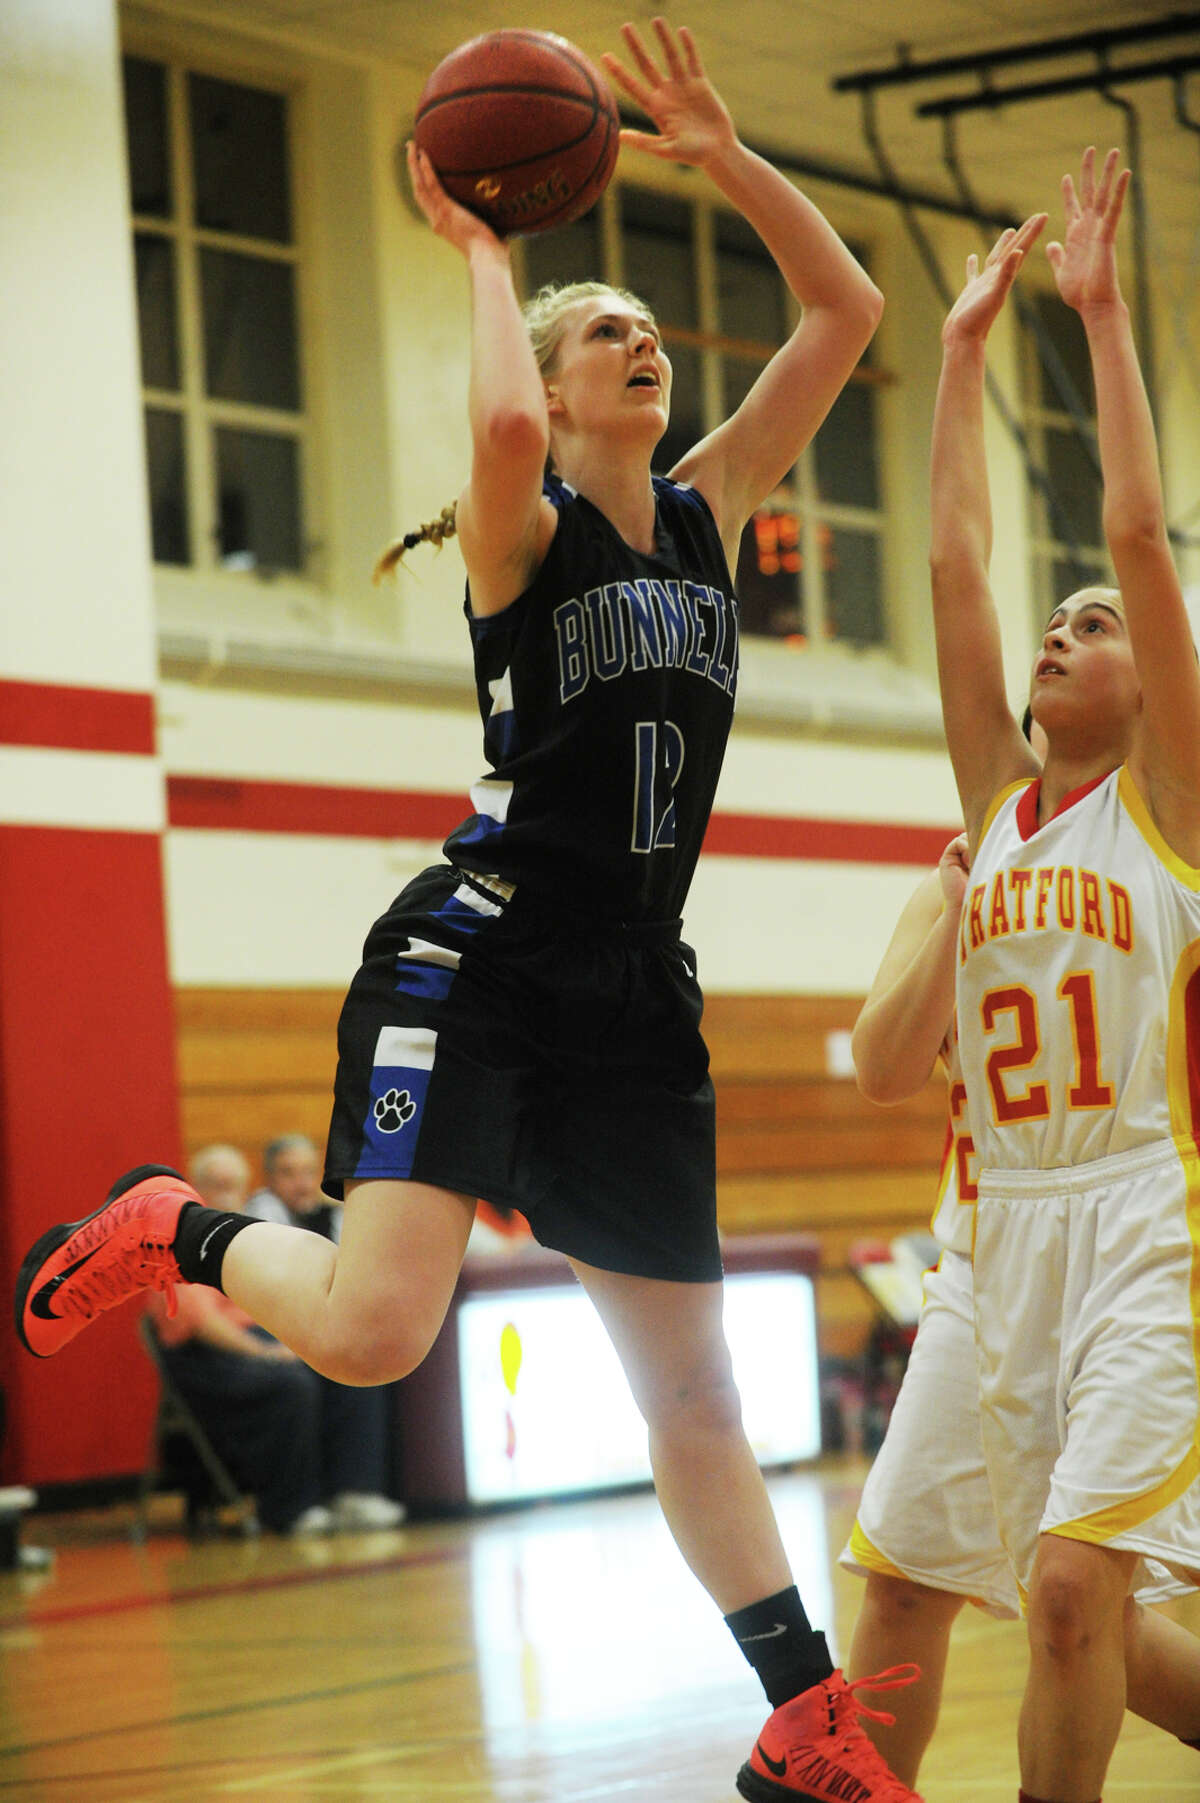 Bunnell's Shannon Hofmiller, left, shoots while defended by Stratford's genesis Torres during their girls basketball matchup at Stratford High School in Stratford, Conn on Monday, January 13, 2014.